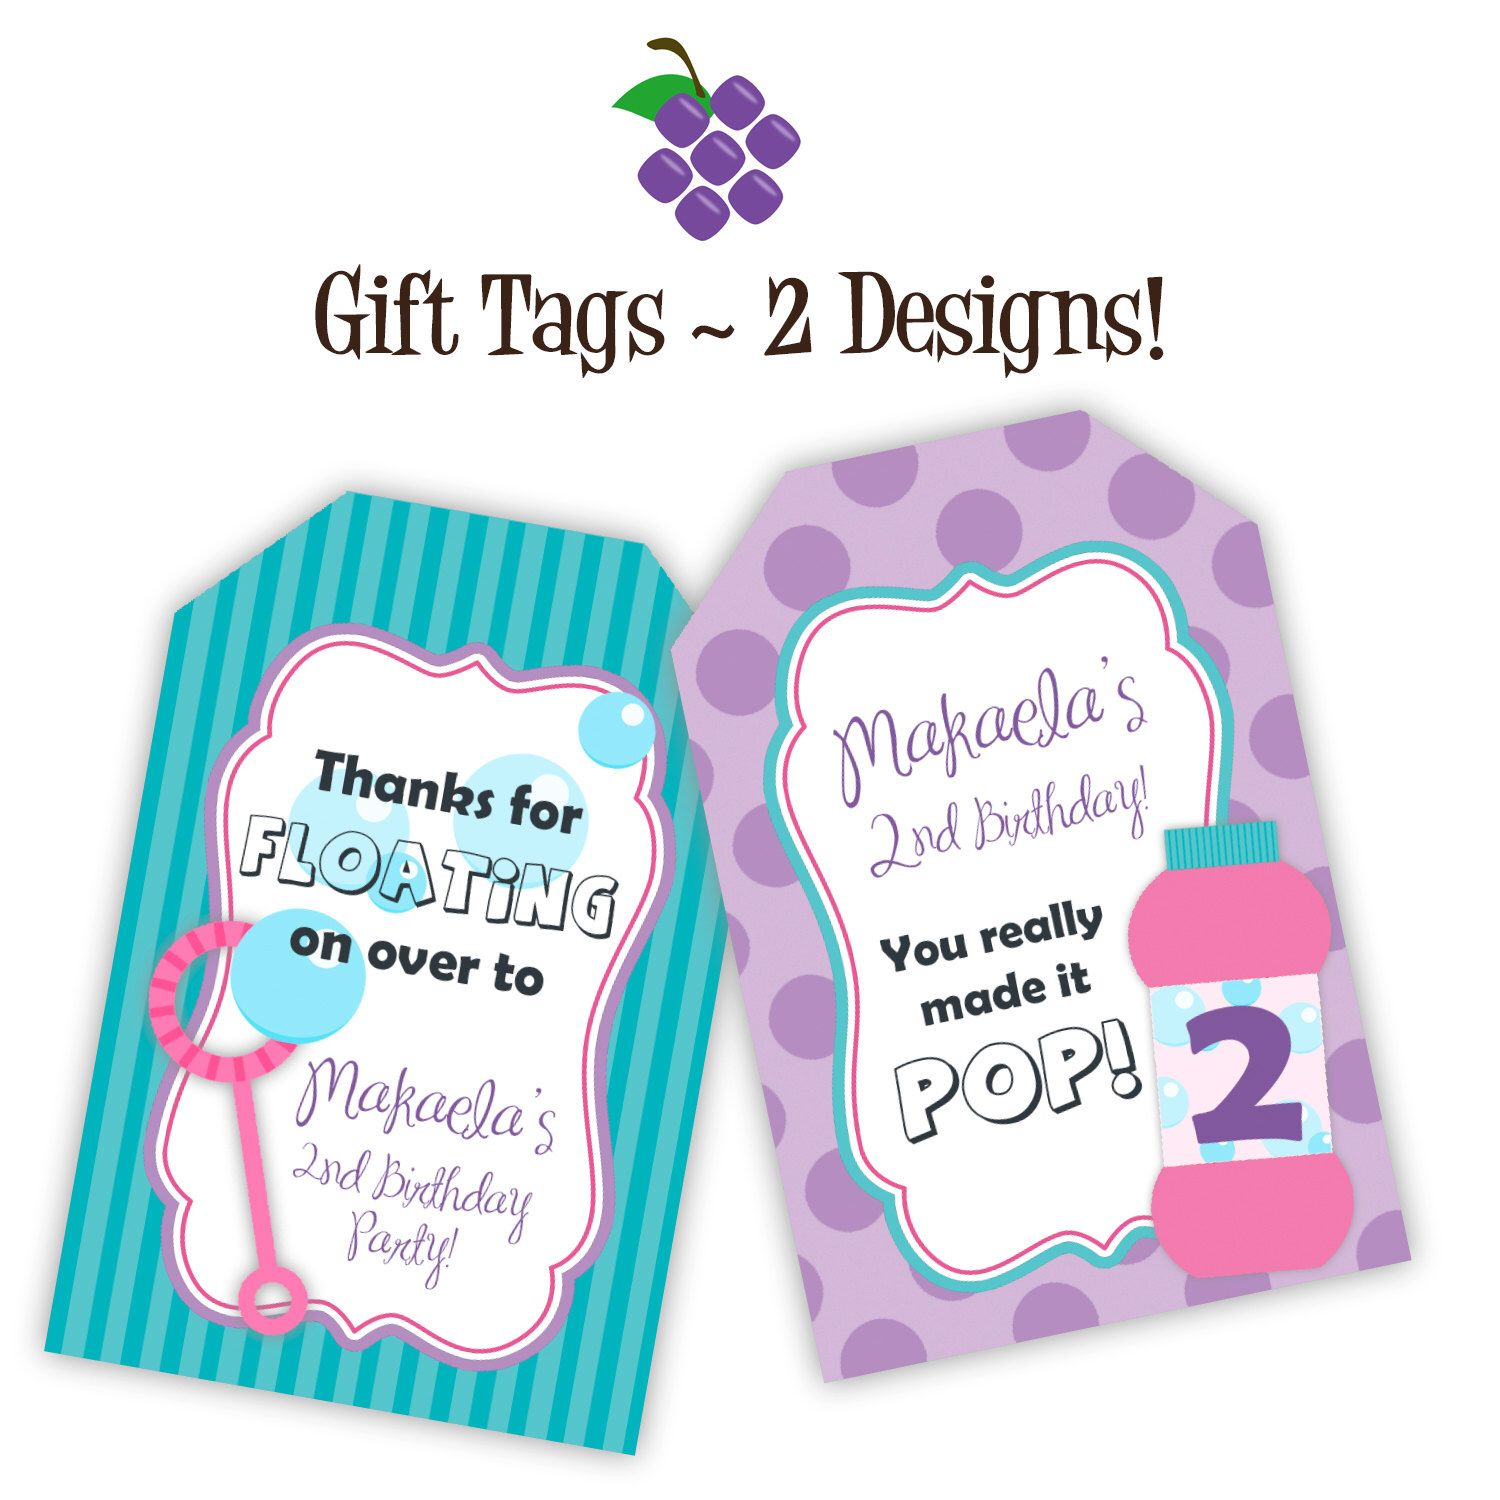 Bubble Party Gift Tags Purple Polka Dots Turquoise Stripes Pink Bubbles Personalized Birthday Party Gift Tags Bubble Party Birthday Party Gift Gift Tags